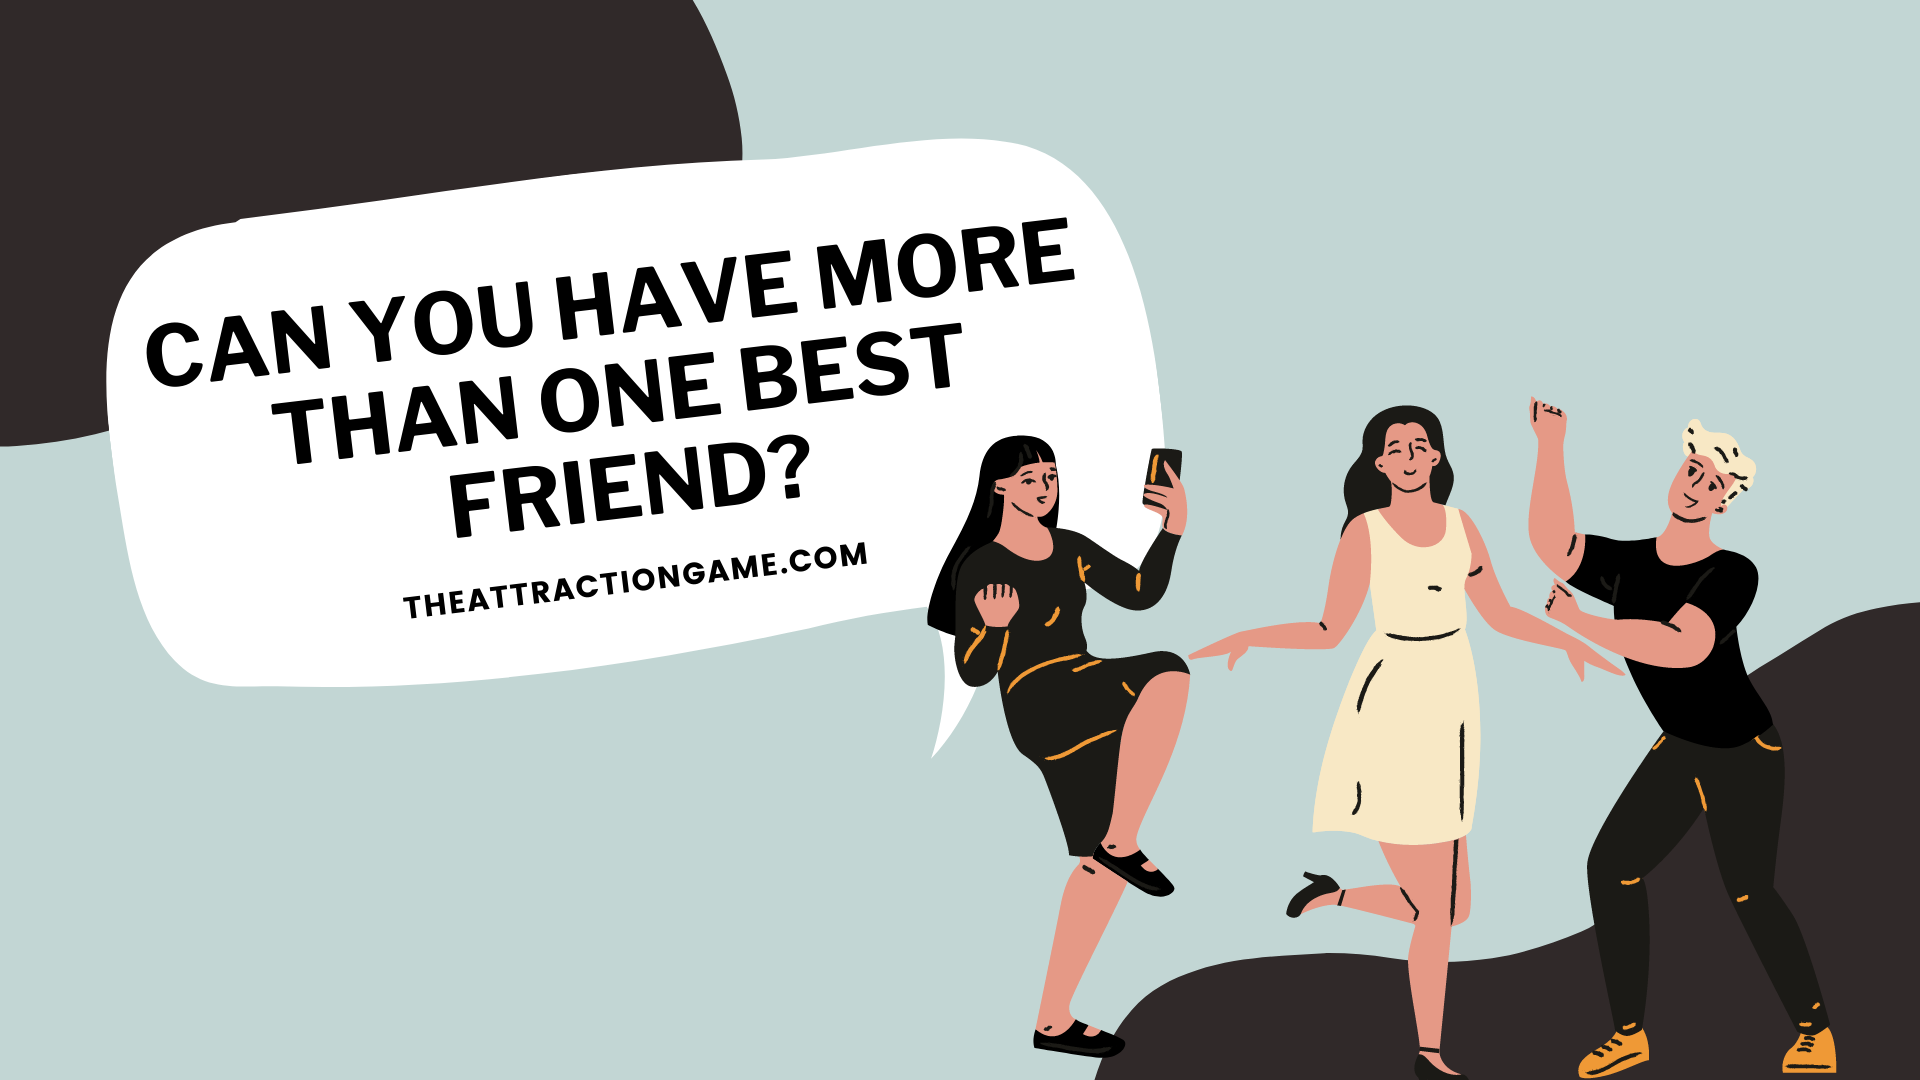 can you have more than one best friend, can you have more best friends, how many best friends can you have,can I have more than one best friend